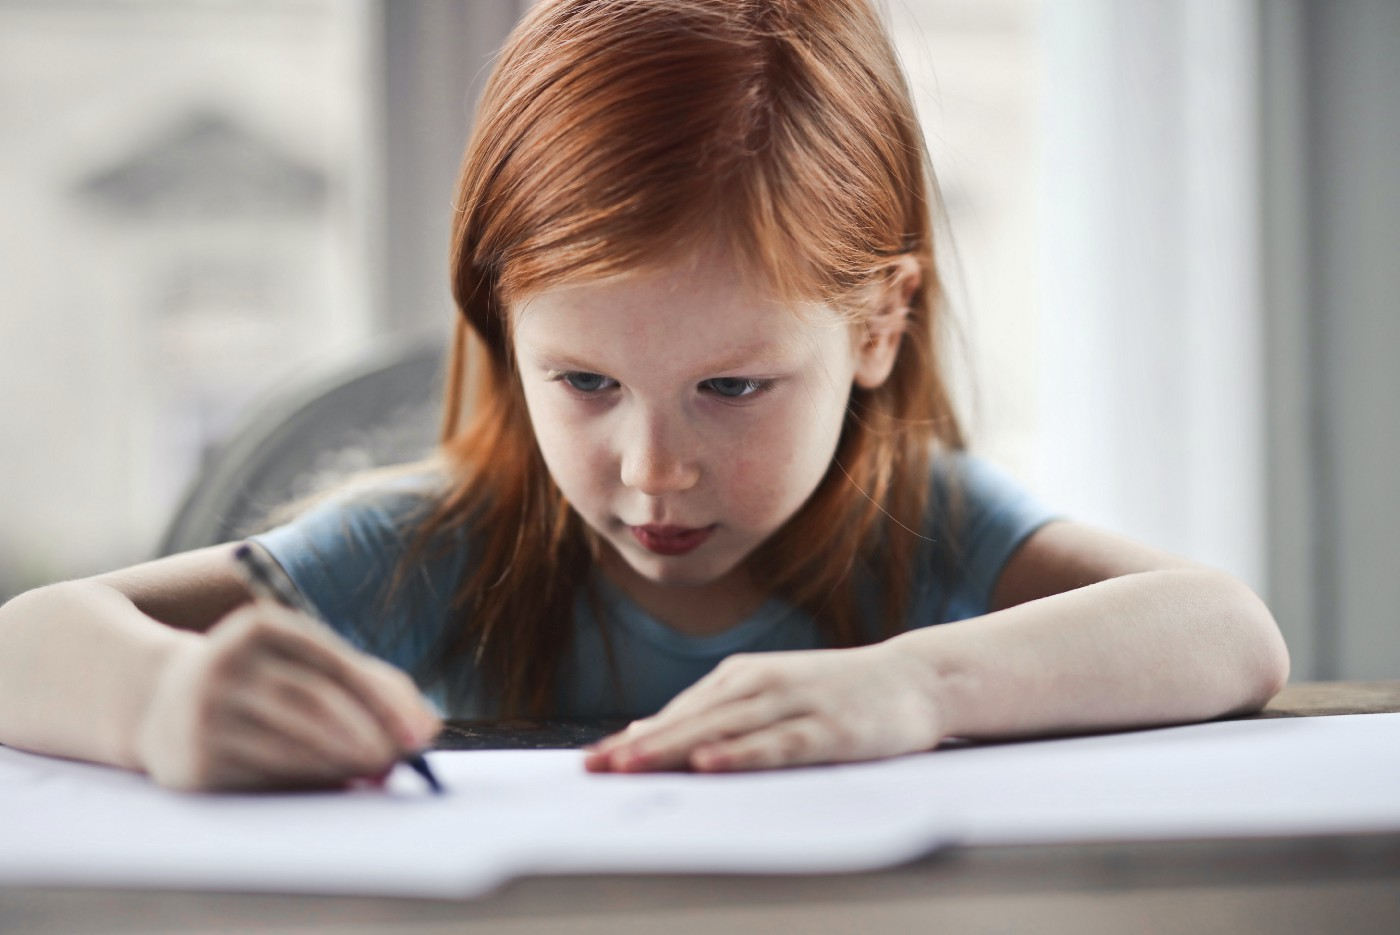 A little girl writing on paper